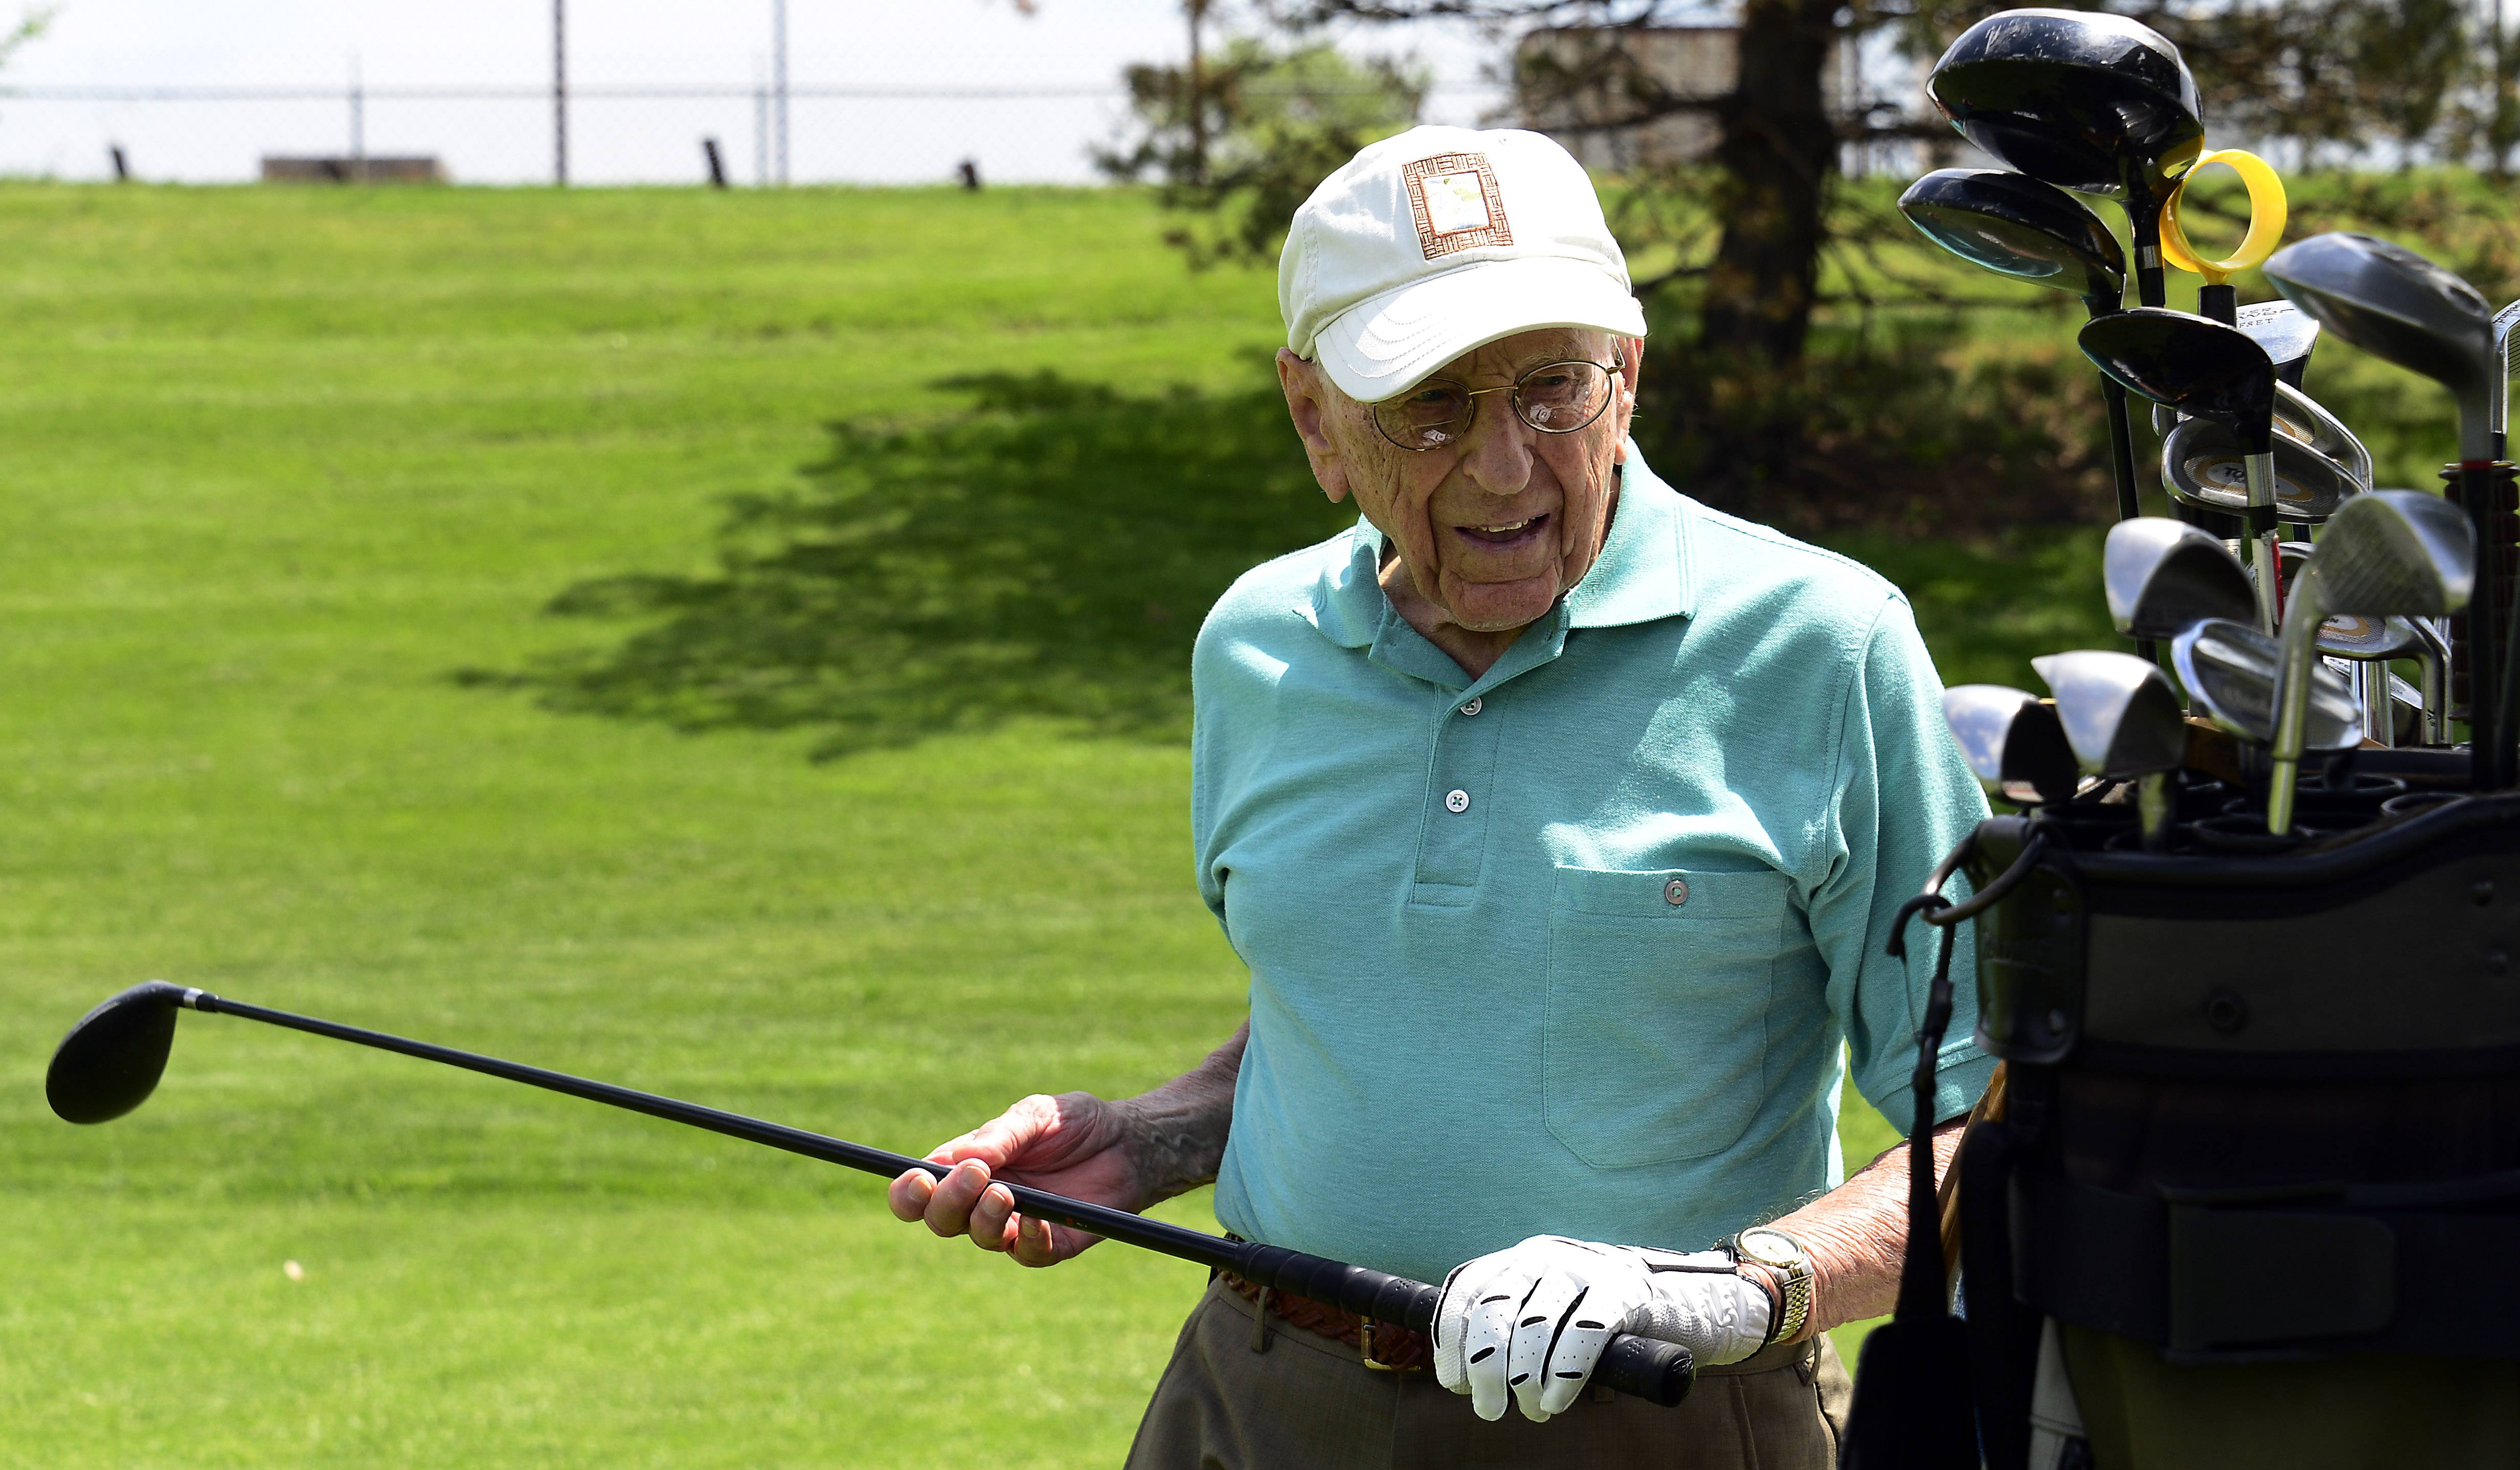 Selecting his 3-wood to tee off, golfer Dick Muhlethaler, 103, is known for having a smooth swing. His secret is a contraption that lets him take full swings all winter long in his Luther Village apartment in Arlington Heights.